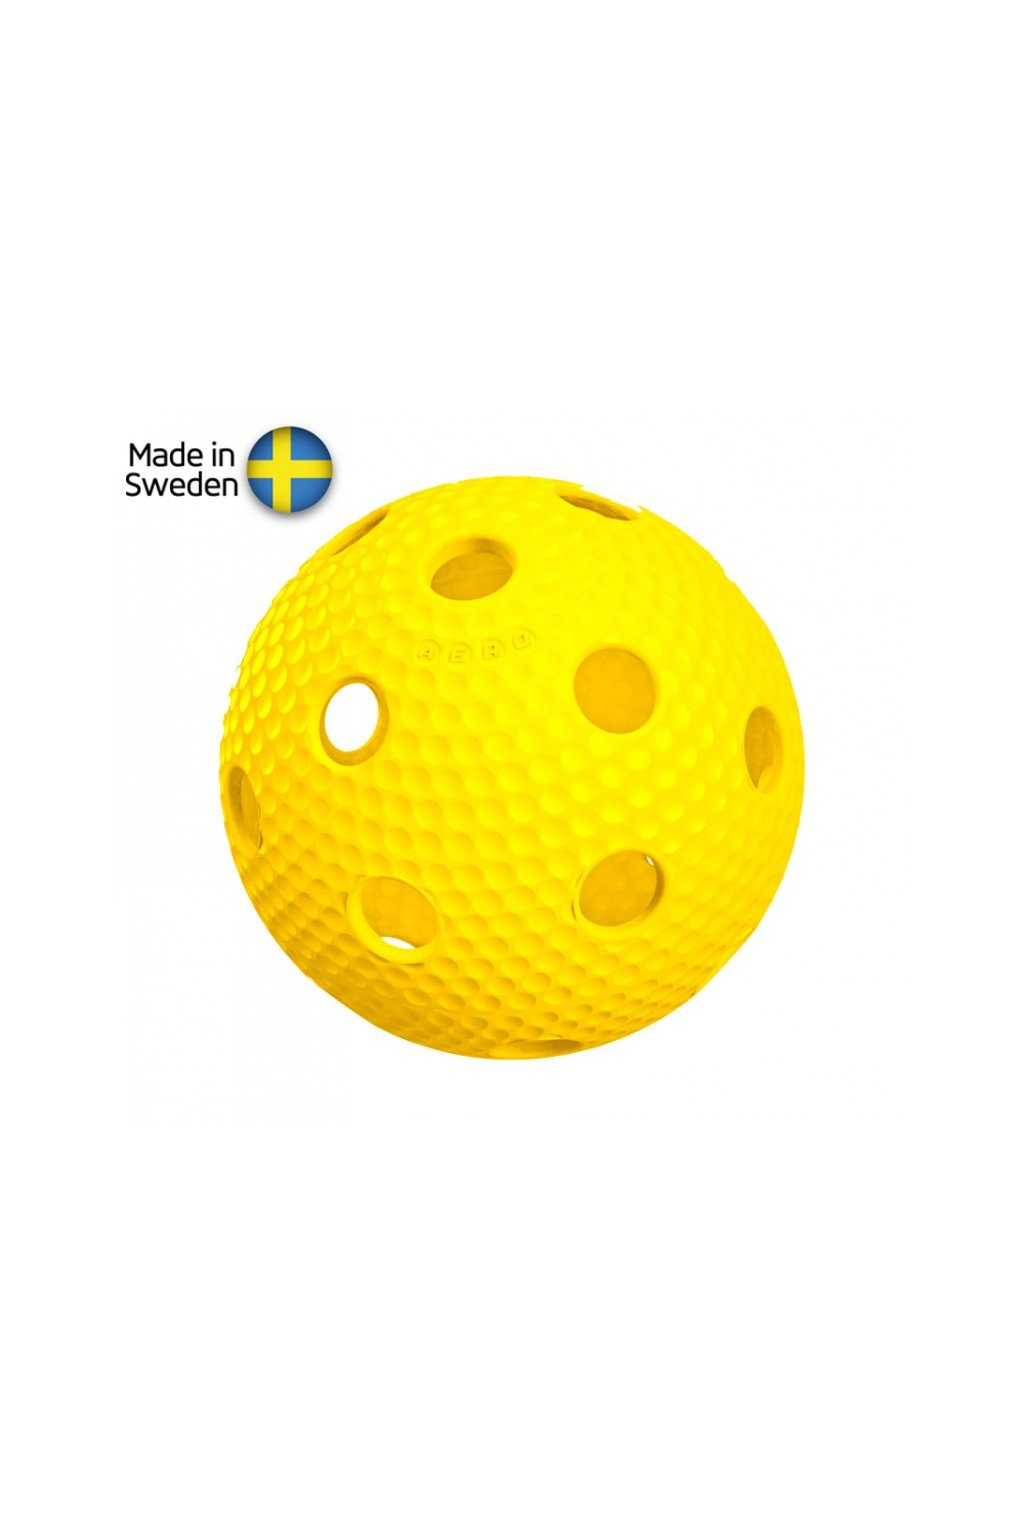 salming aero plus ball yellow with dumples